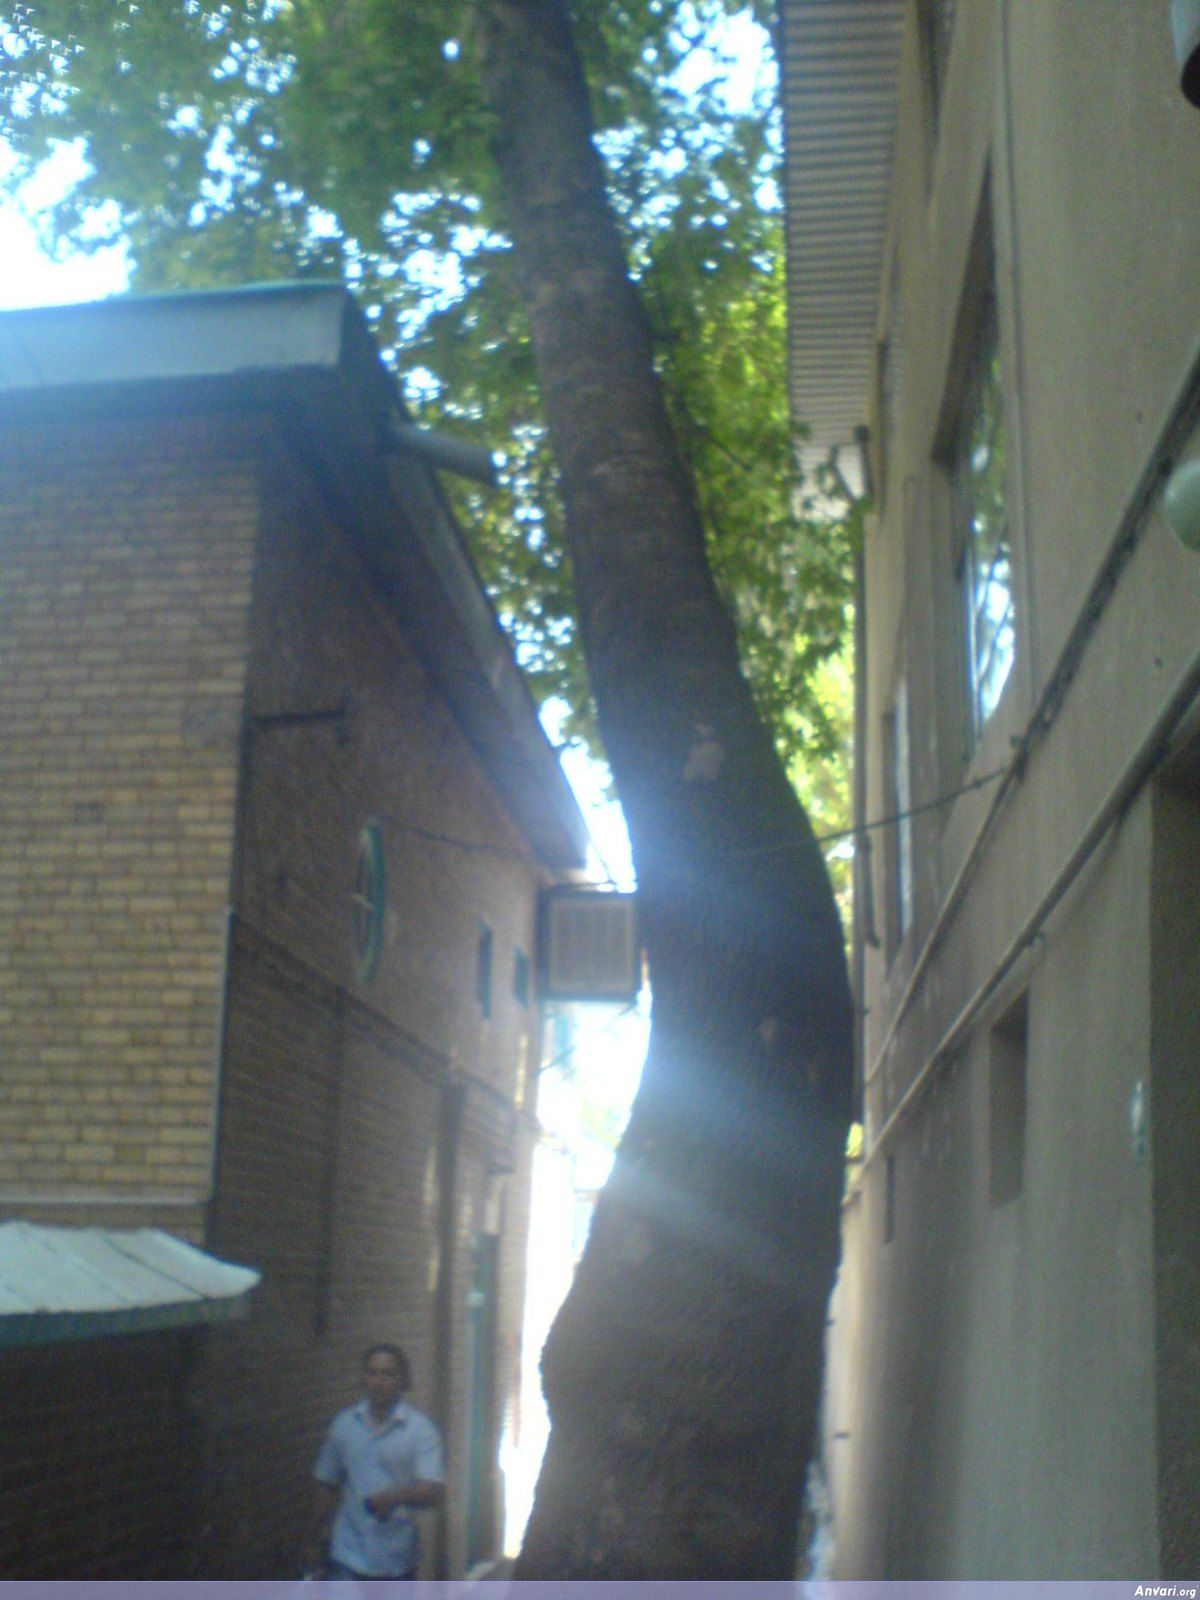 Tree Growing Carefully Between Houses - Tree Growing Carefully Between Houses